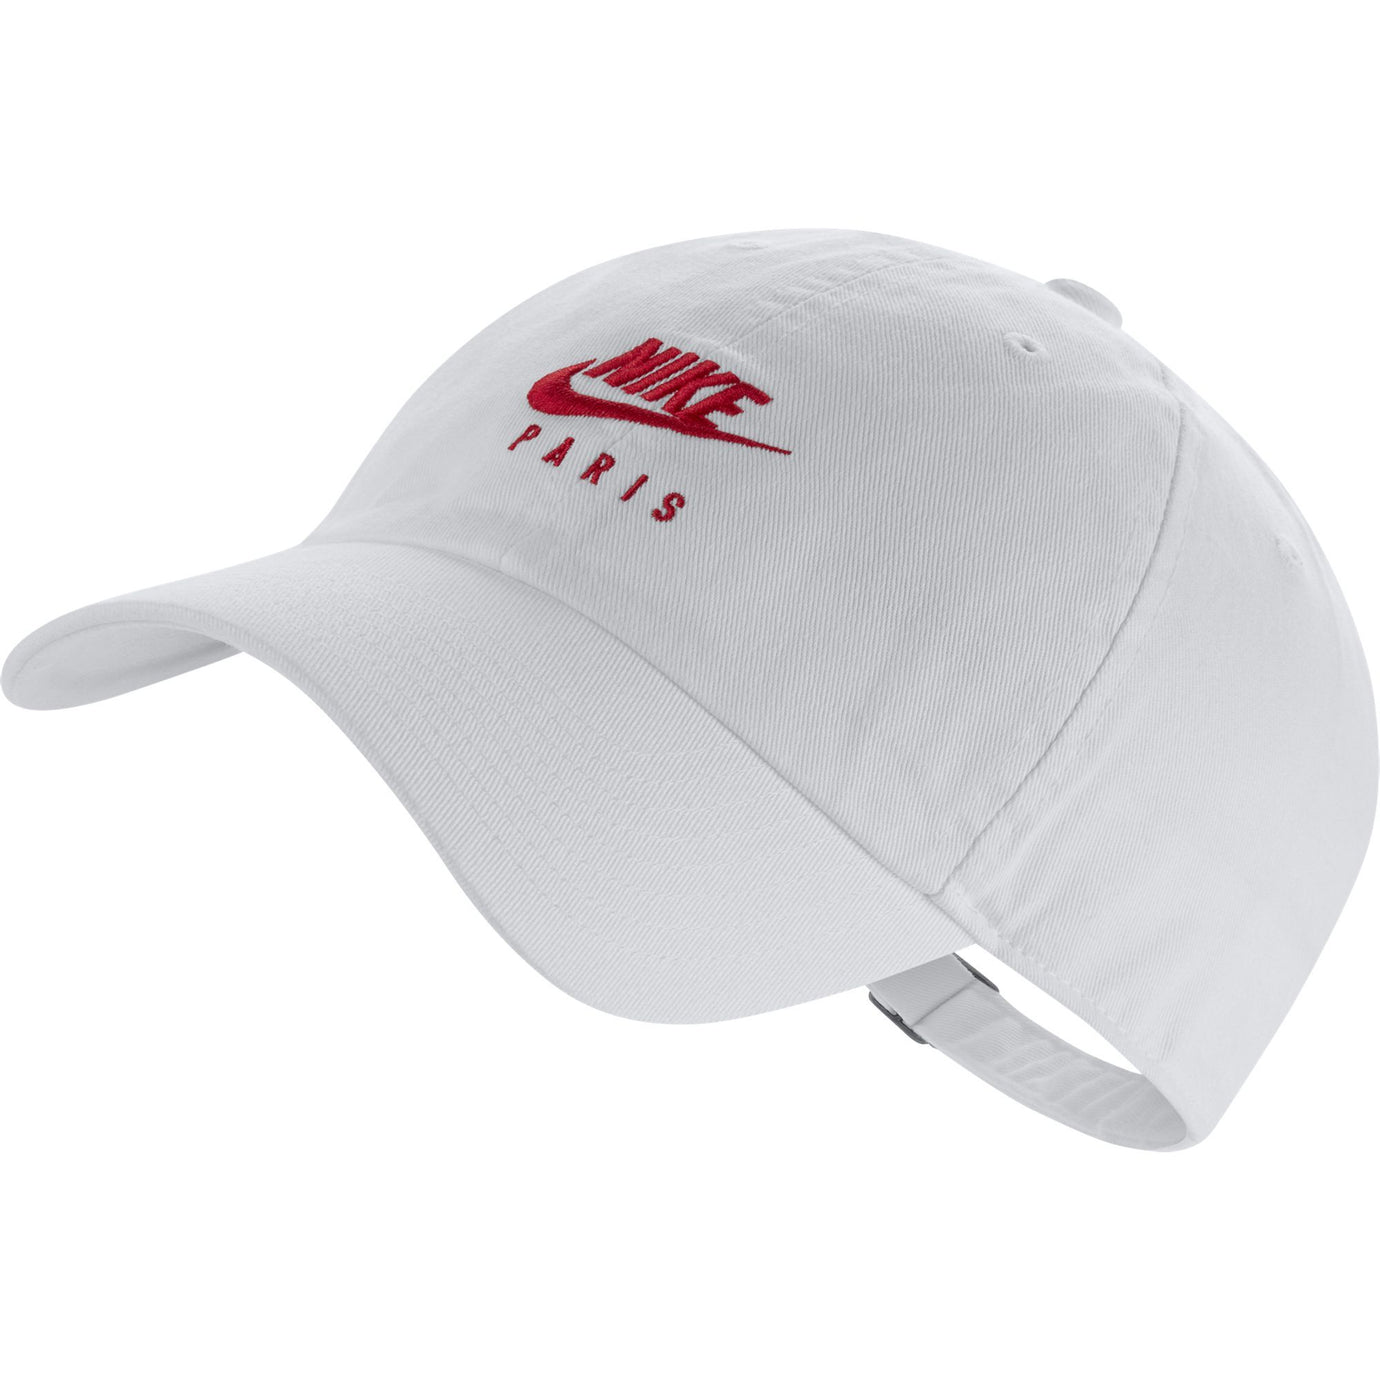 NIKE PSG 19-20 CAP HERITAGE86 WHITE/UNIVERSITY RED